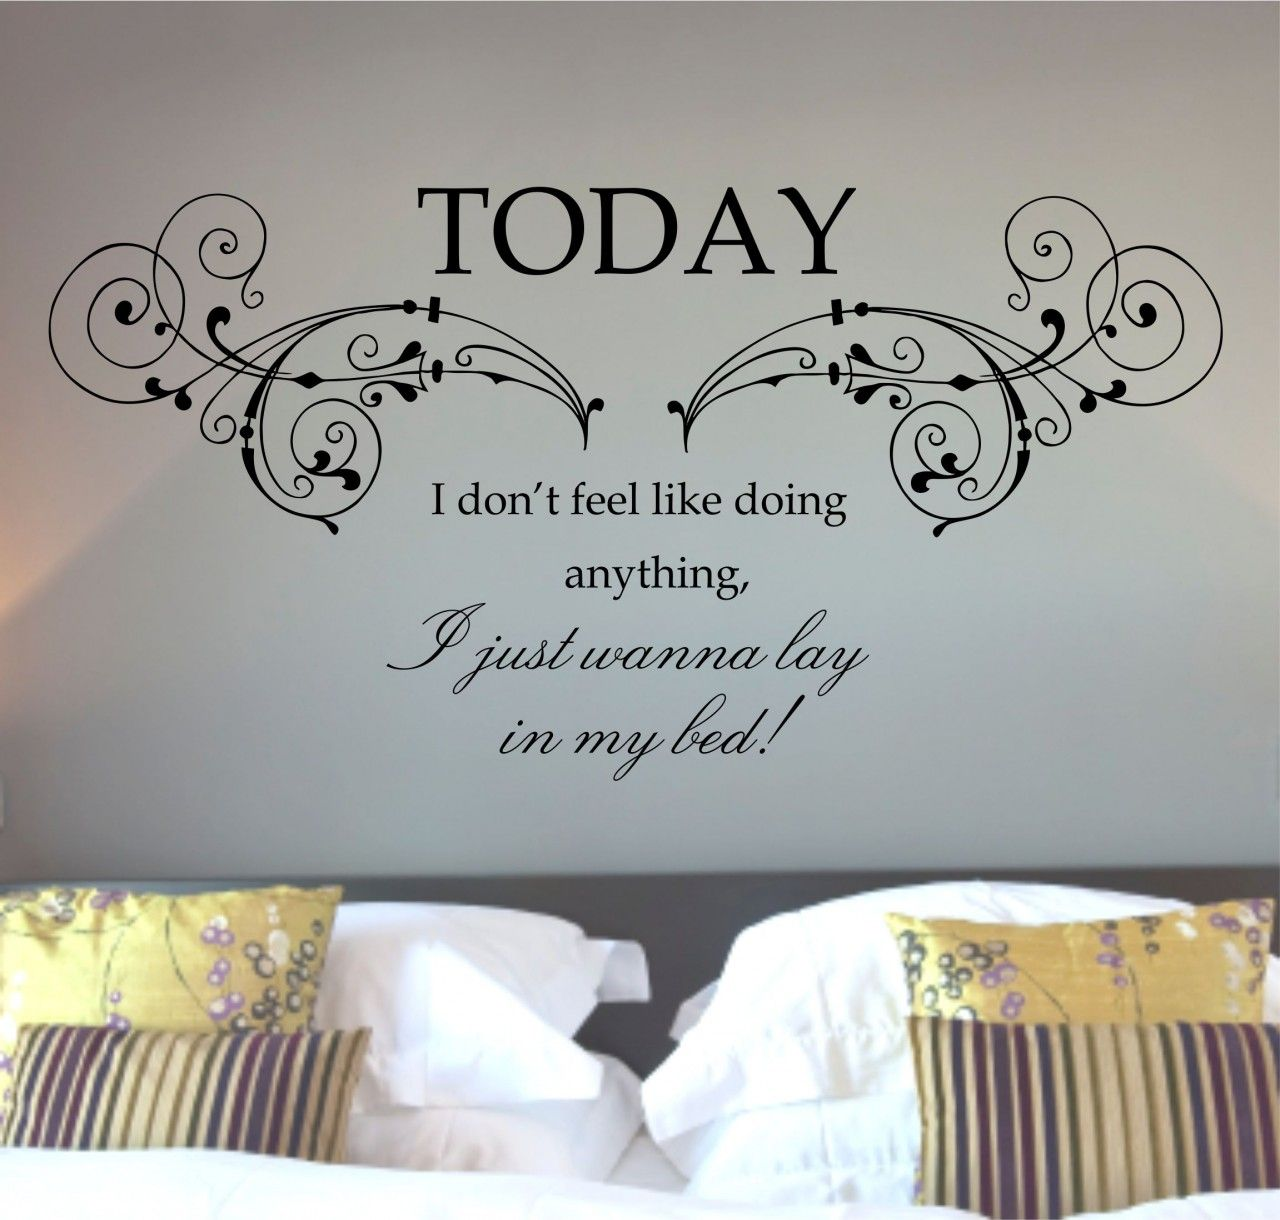 Mars Lazy Song Quote Wall Art Sticker Decal Mural. wall decals       Mars Lazy Song Quote Wall Art Sticker Decal